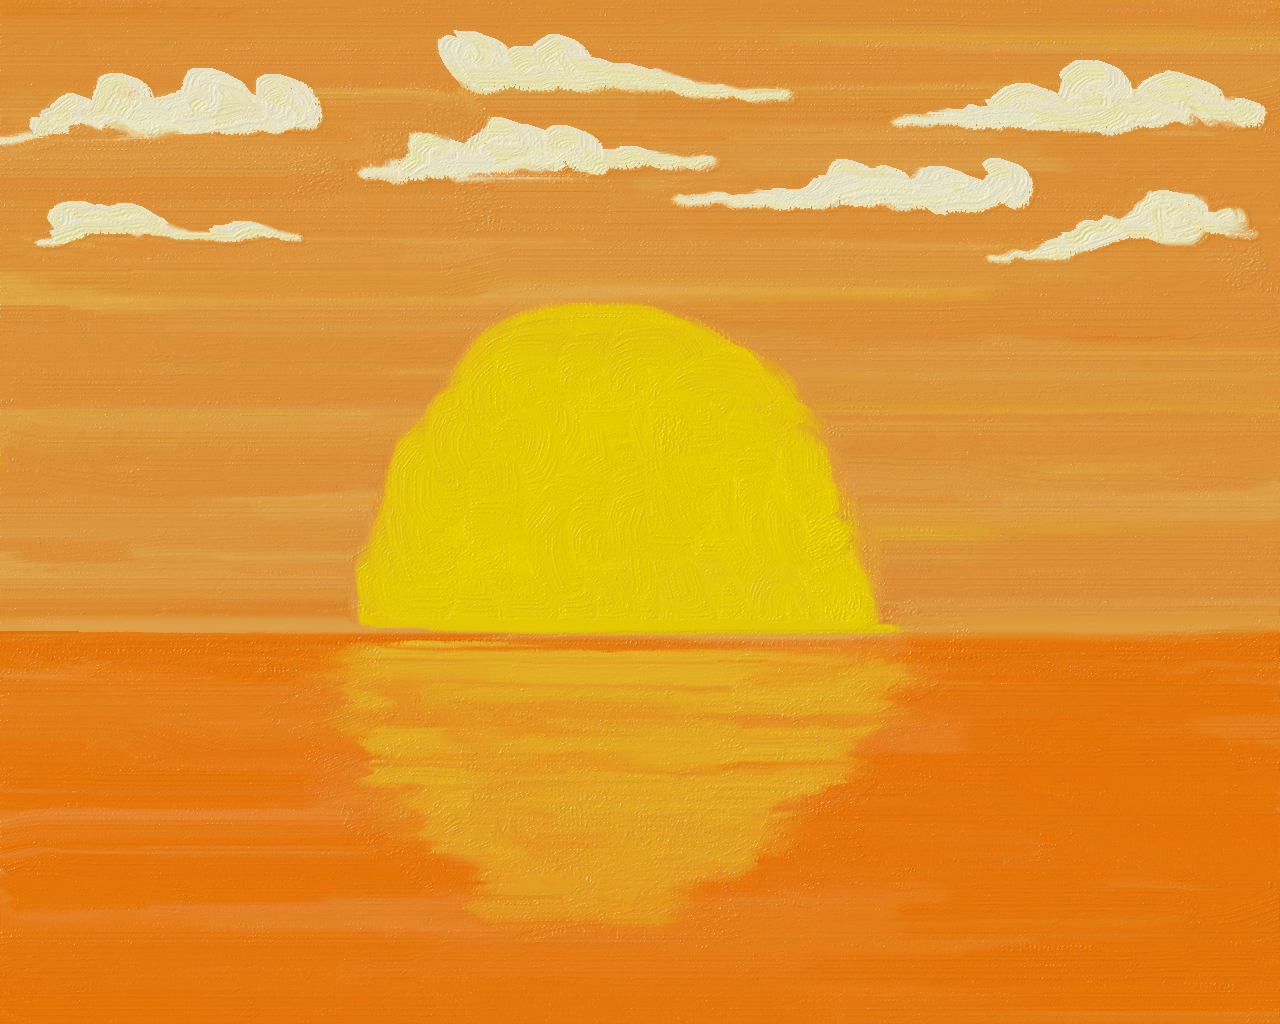 Sunset.. Drawing with Frech Paint app.. ツ Paint app